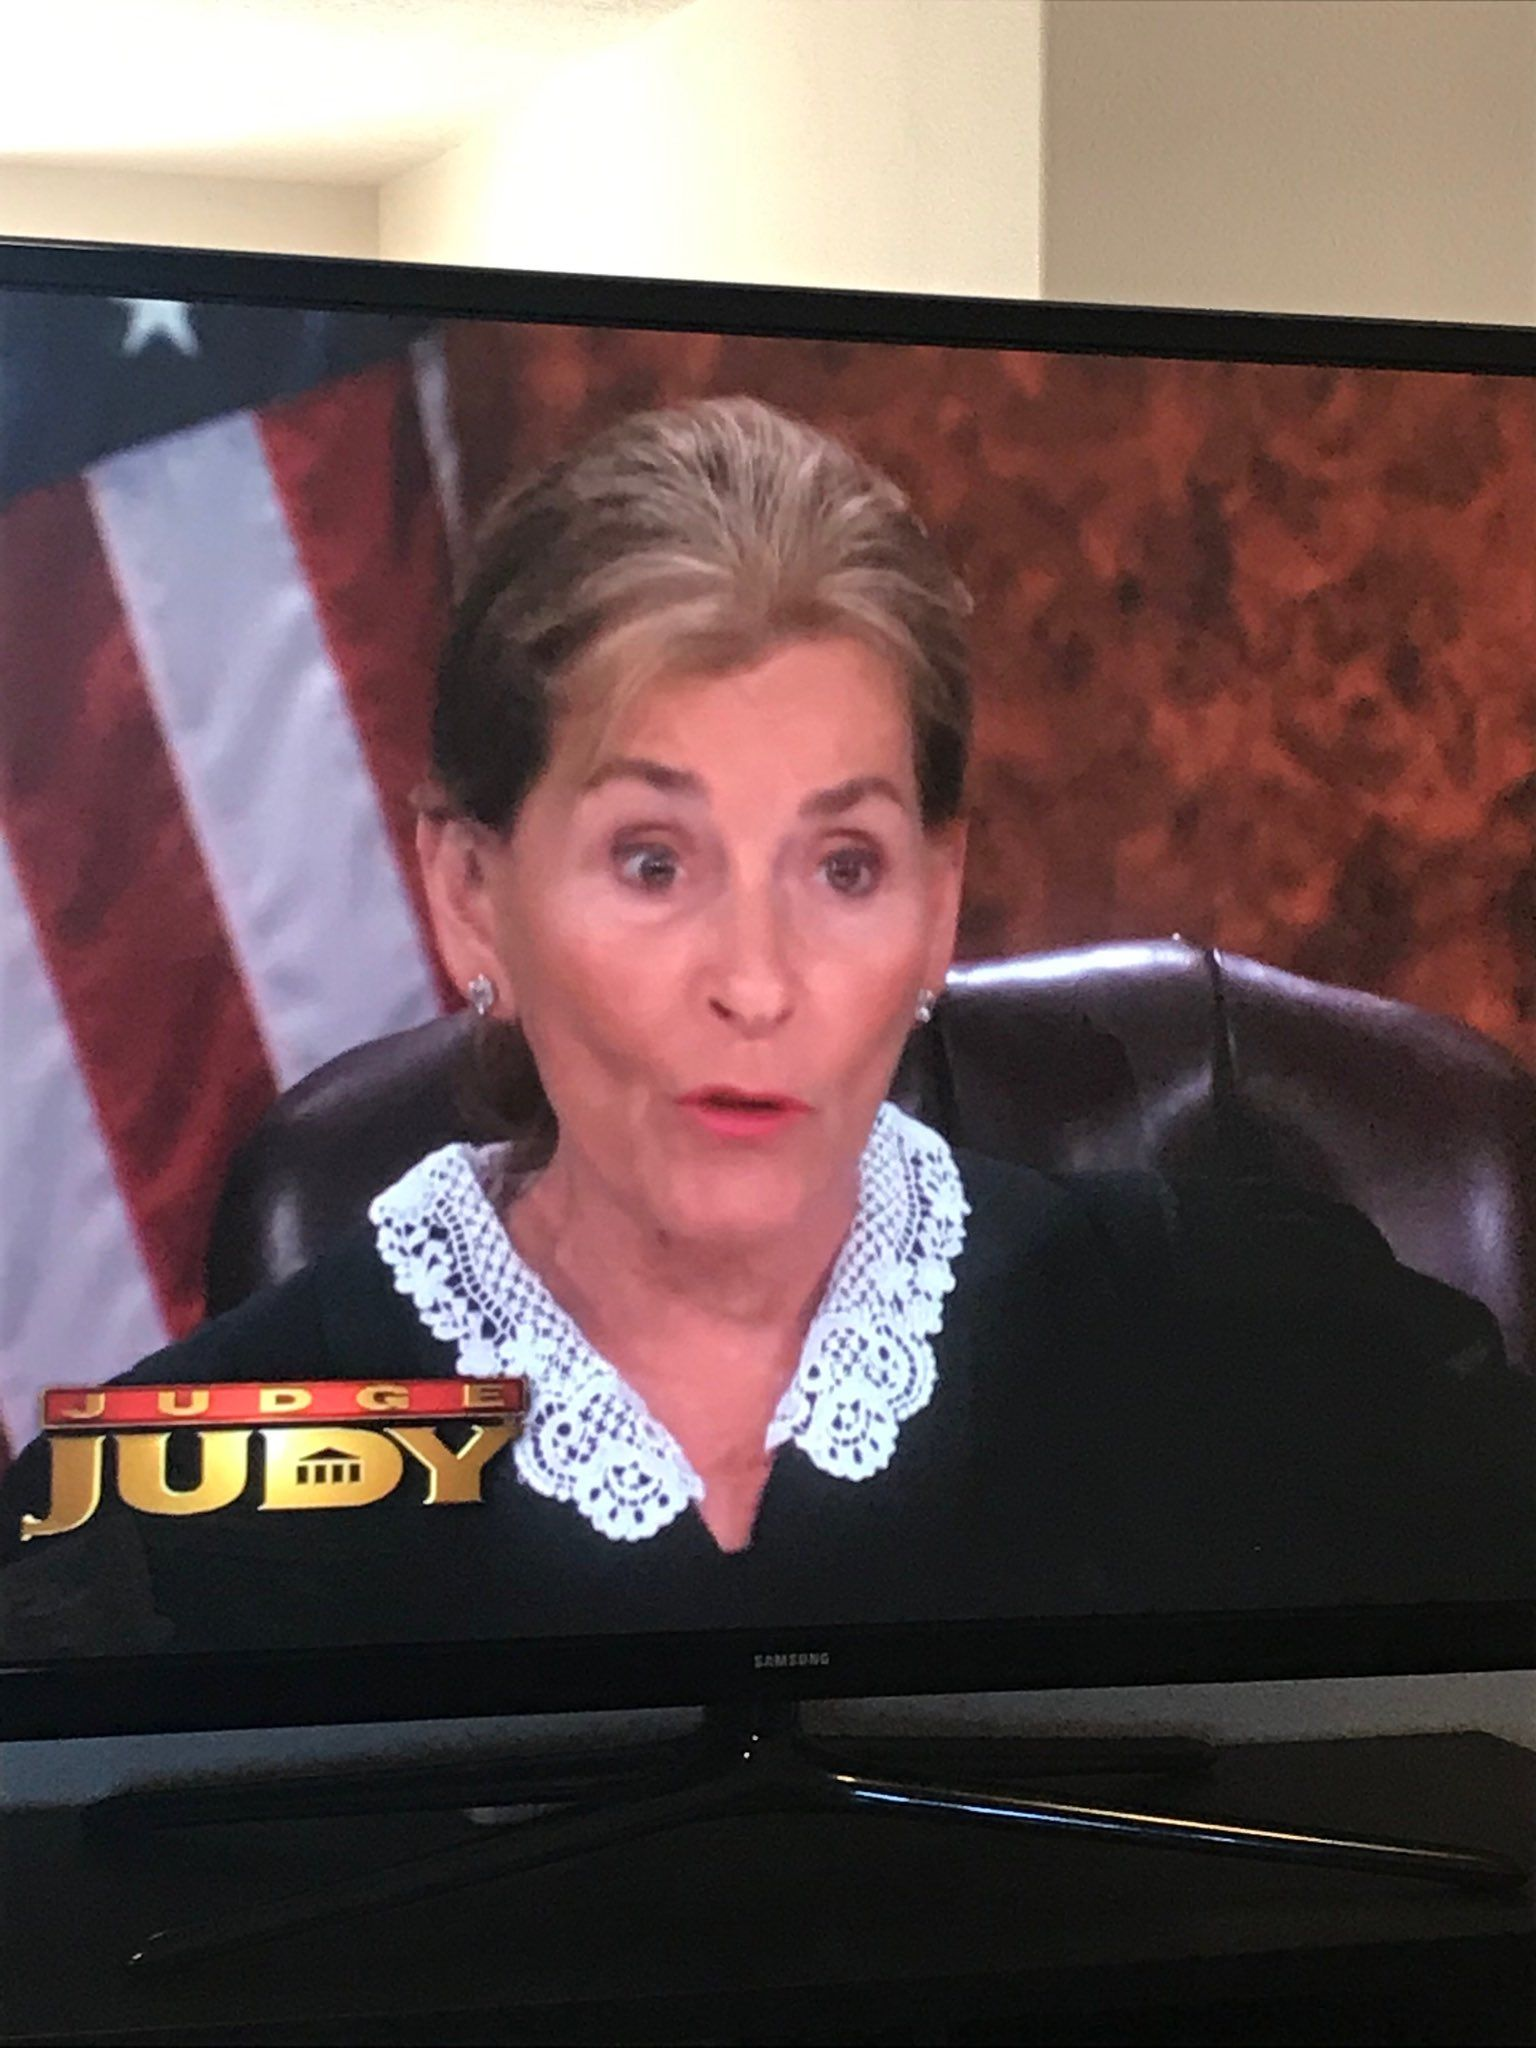 judge judy - page 2 - blogs & forums